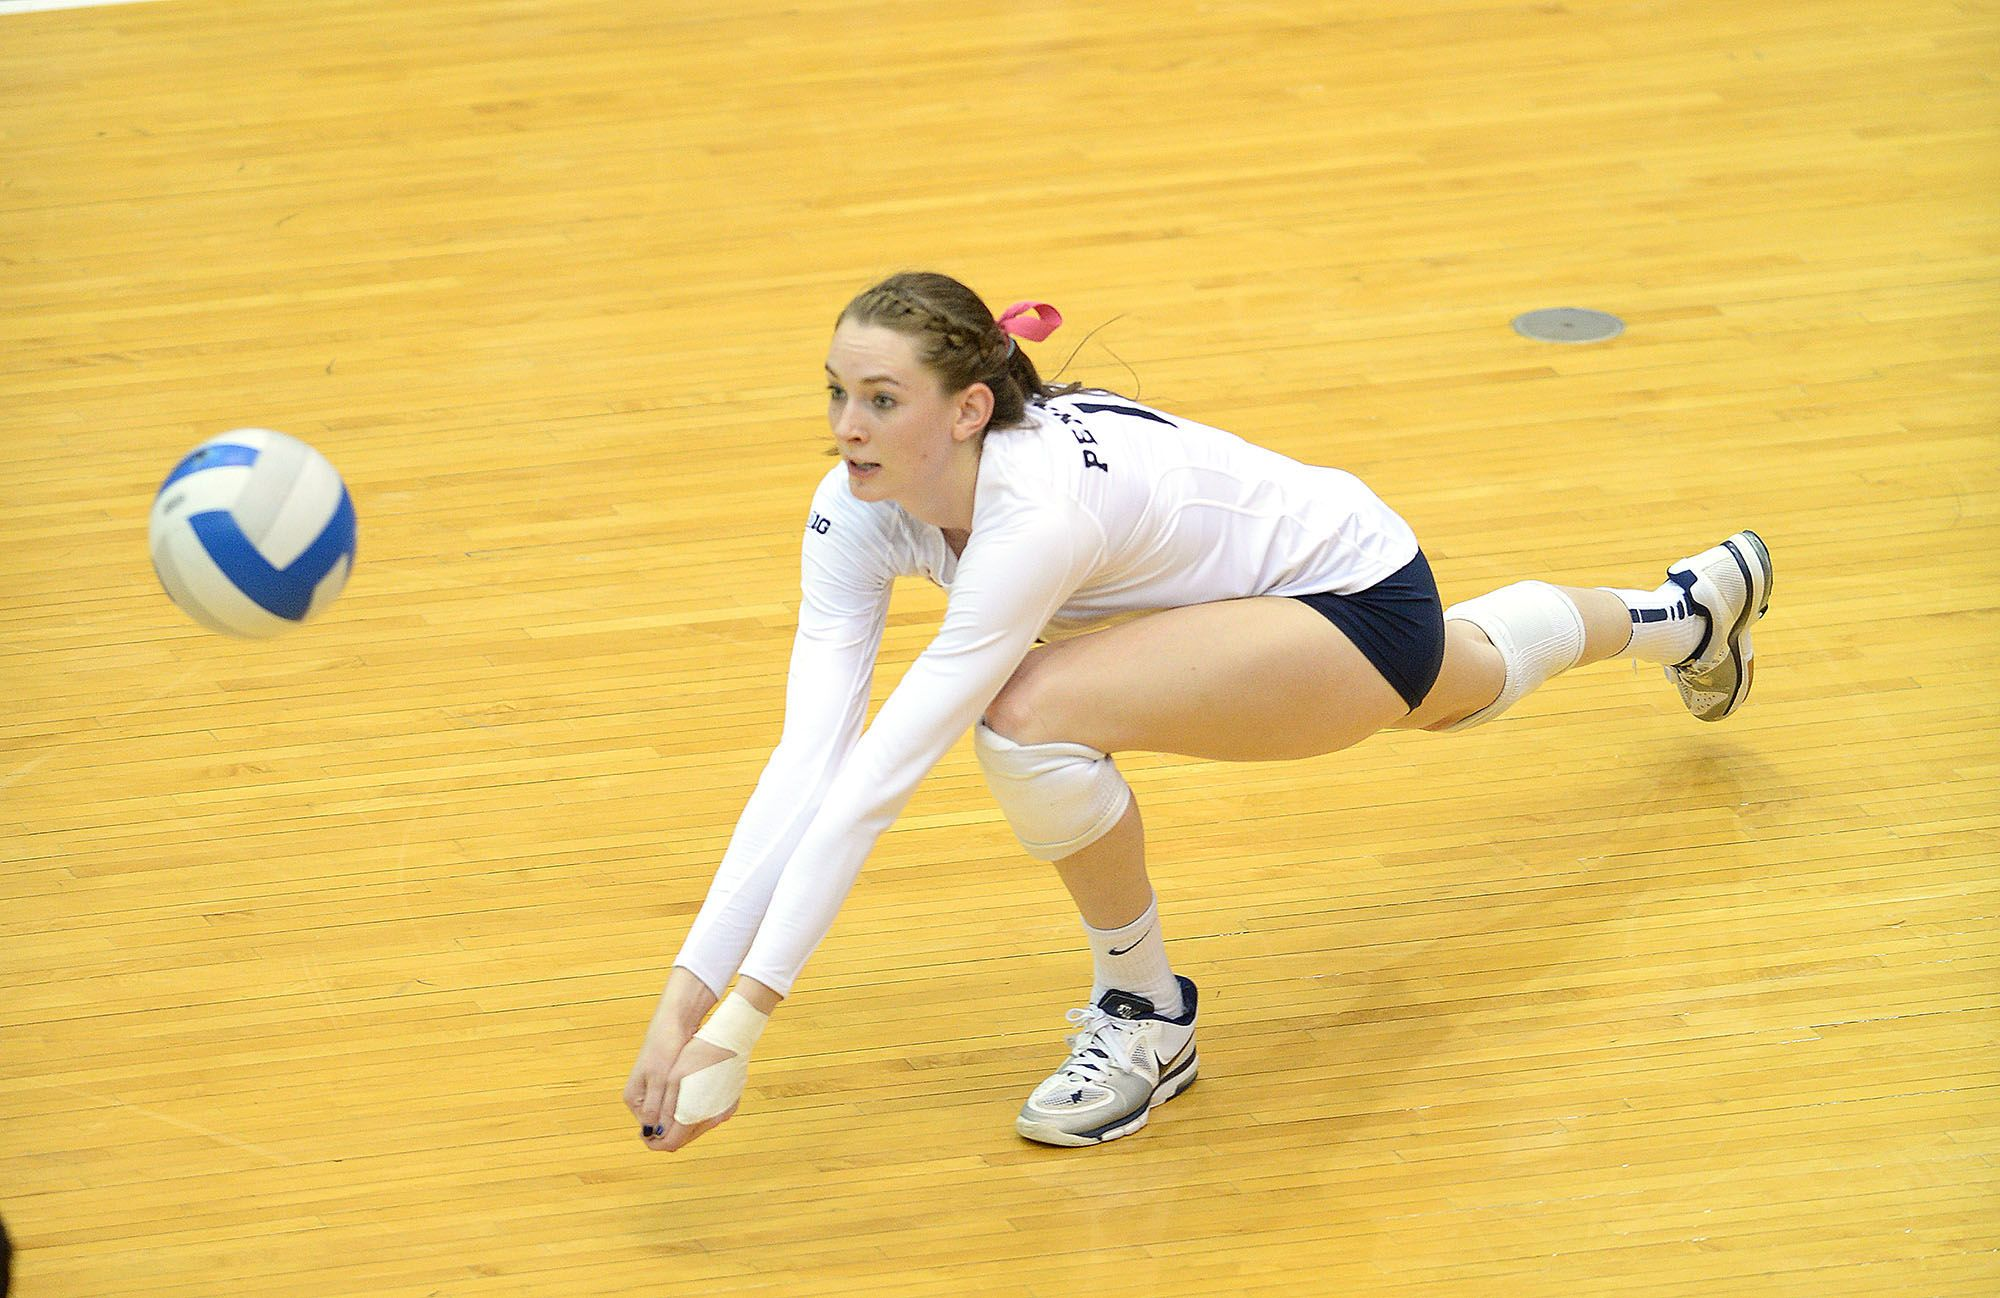 Penn State Athletics Megan Courtney Dives For Dig Against Minnesota In Rec Hall Penn State Athletics Penn State Sports Football Images